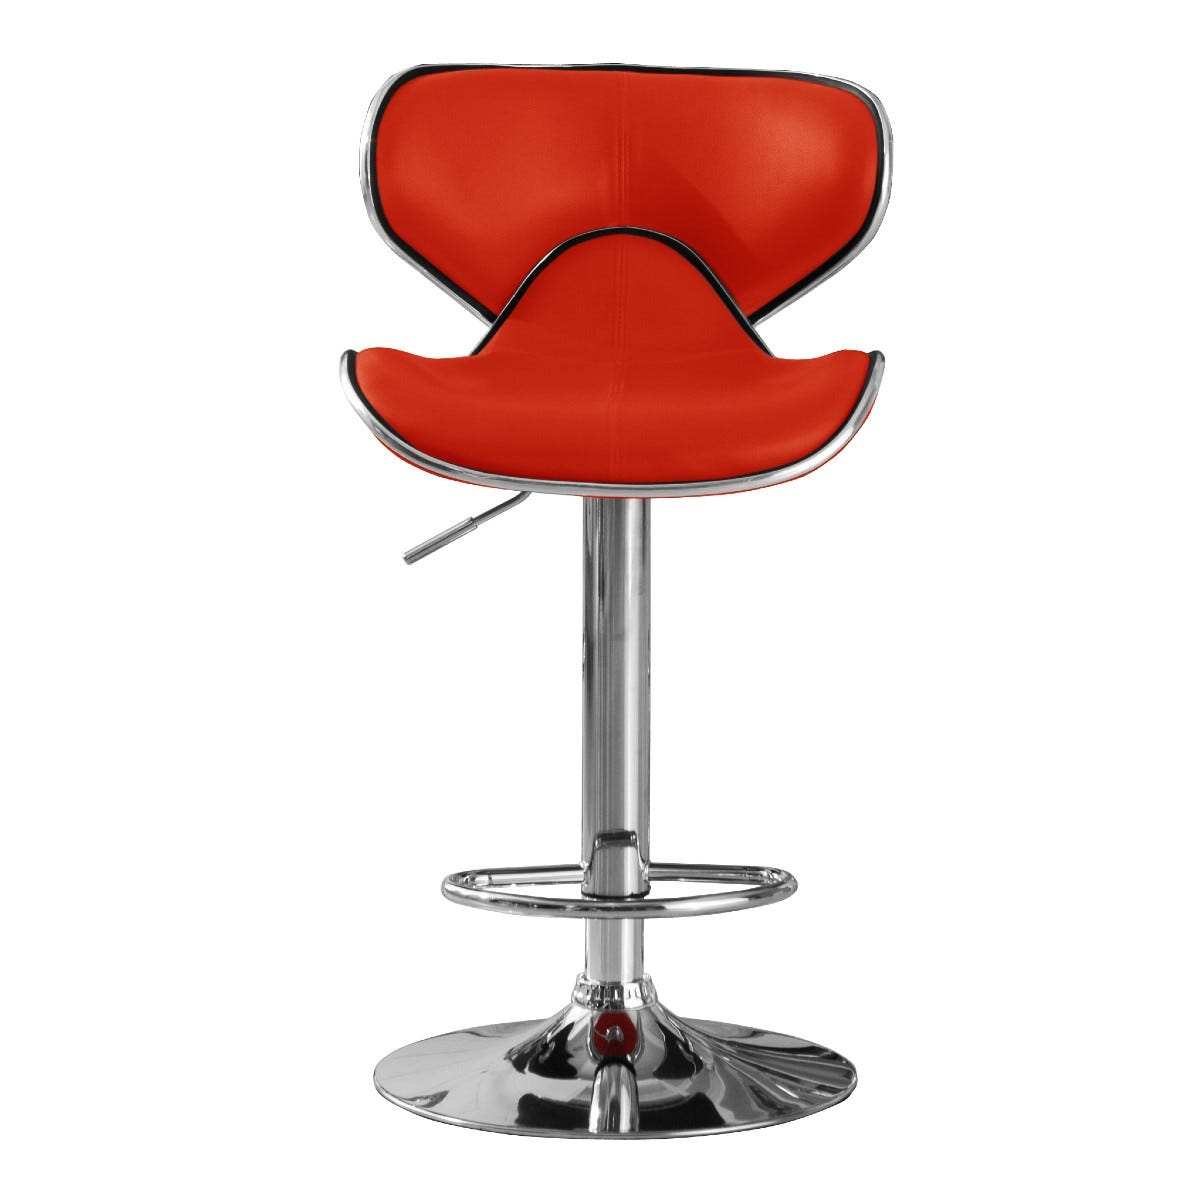 Hillside Adjustable Height Bar Stool Pair Chrome and Red